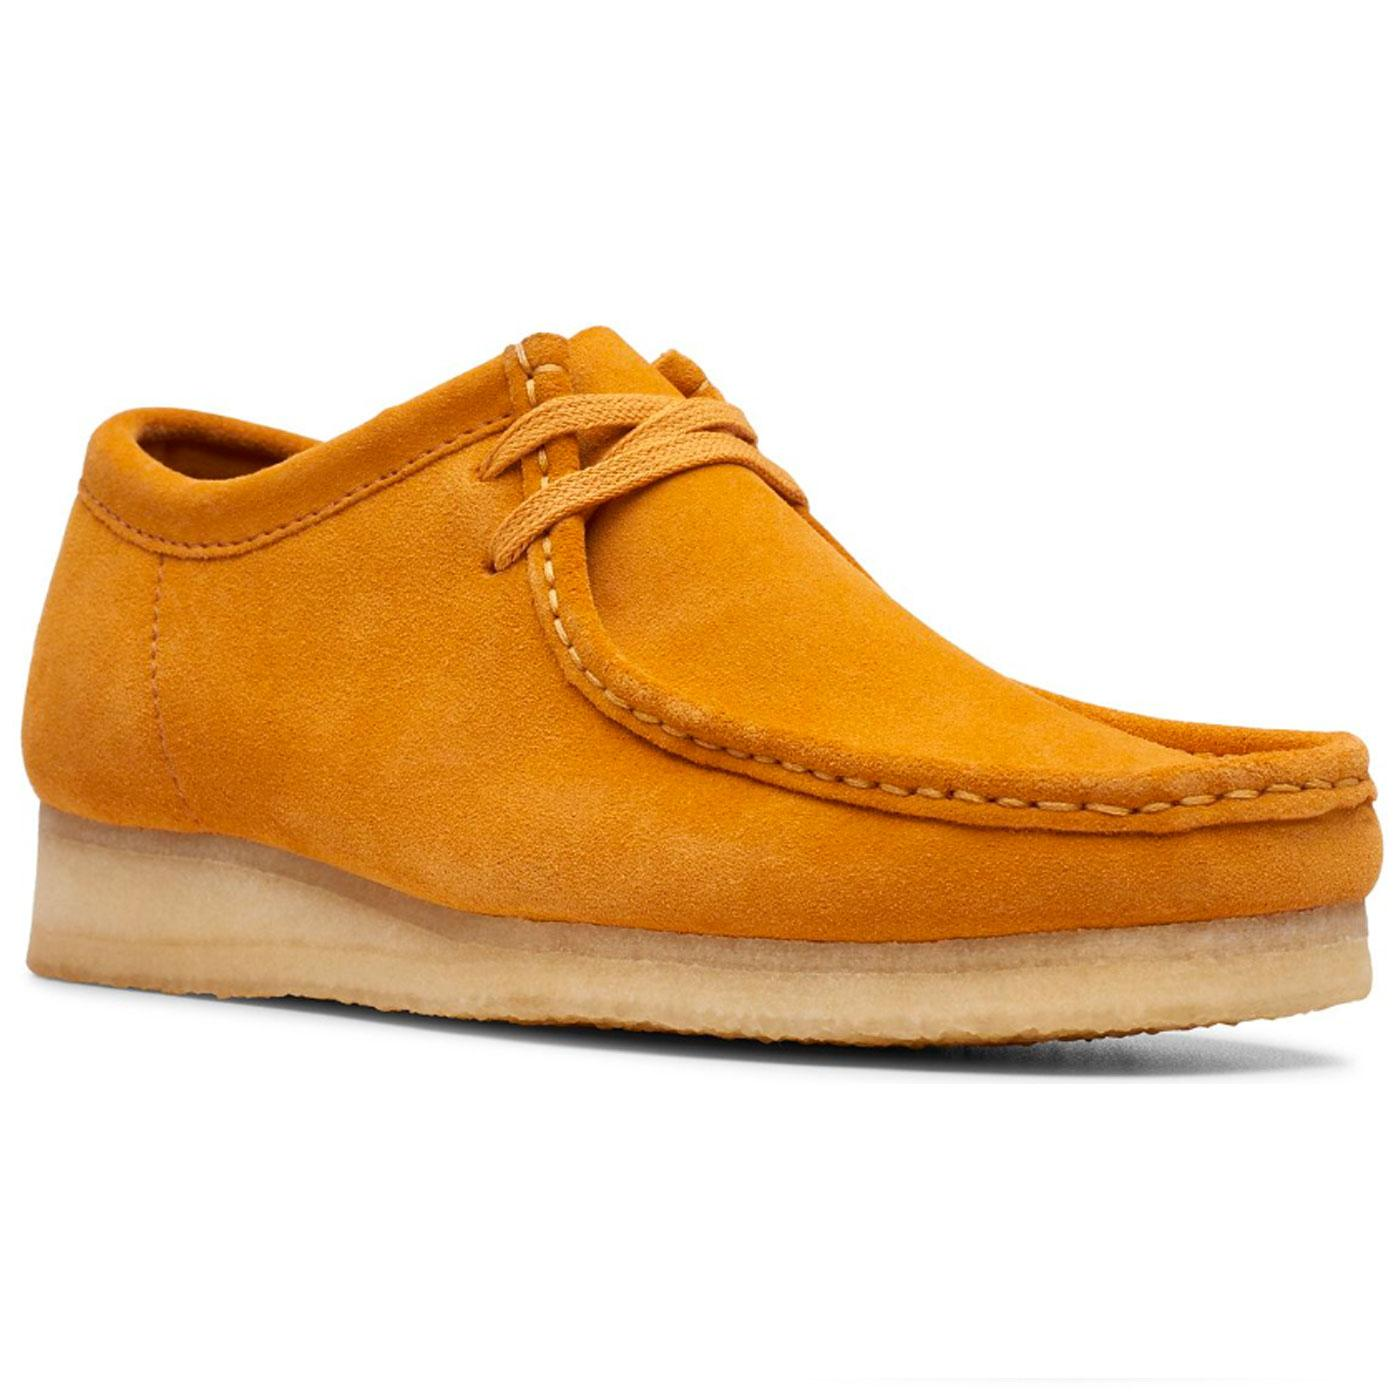 Wallabee CLARKS ORIGINALS Mod Suede Shoes TURMERIC